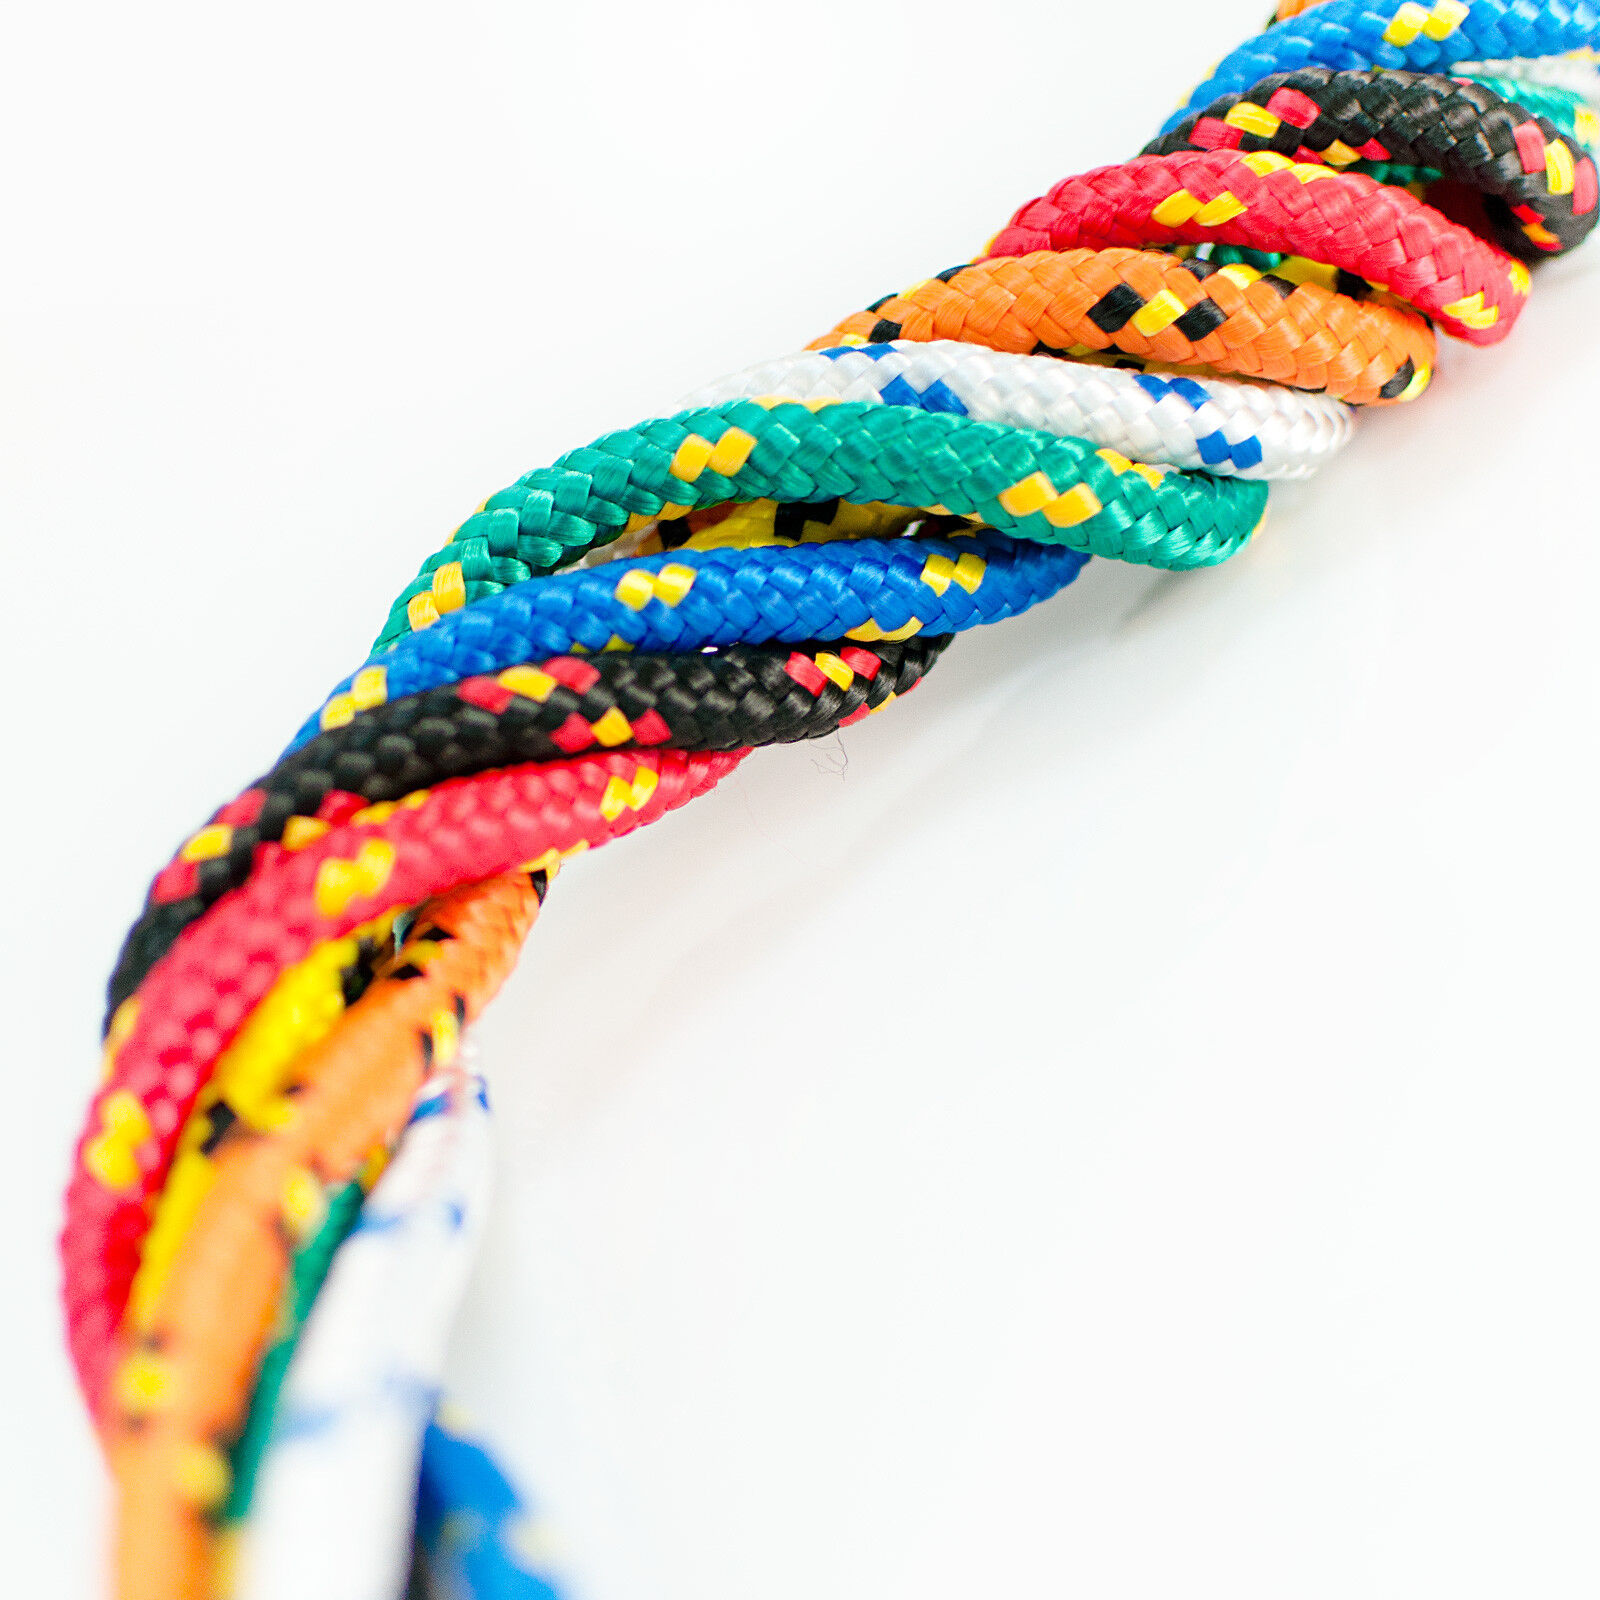 14mm POLYPROPYLENE ROPE braided polyrope weatherproof UV-stable synthetic fibre